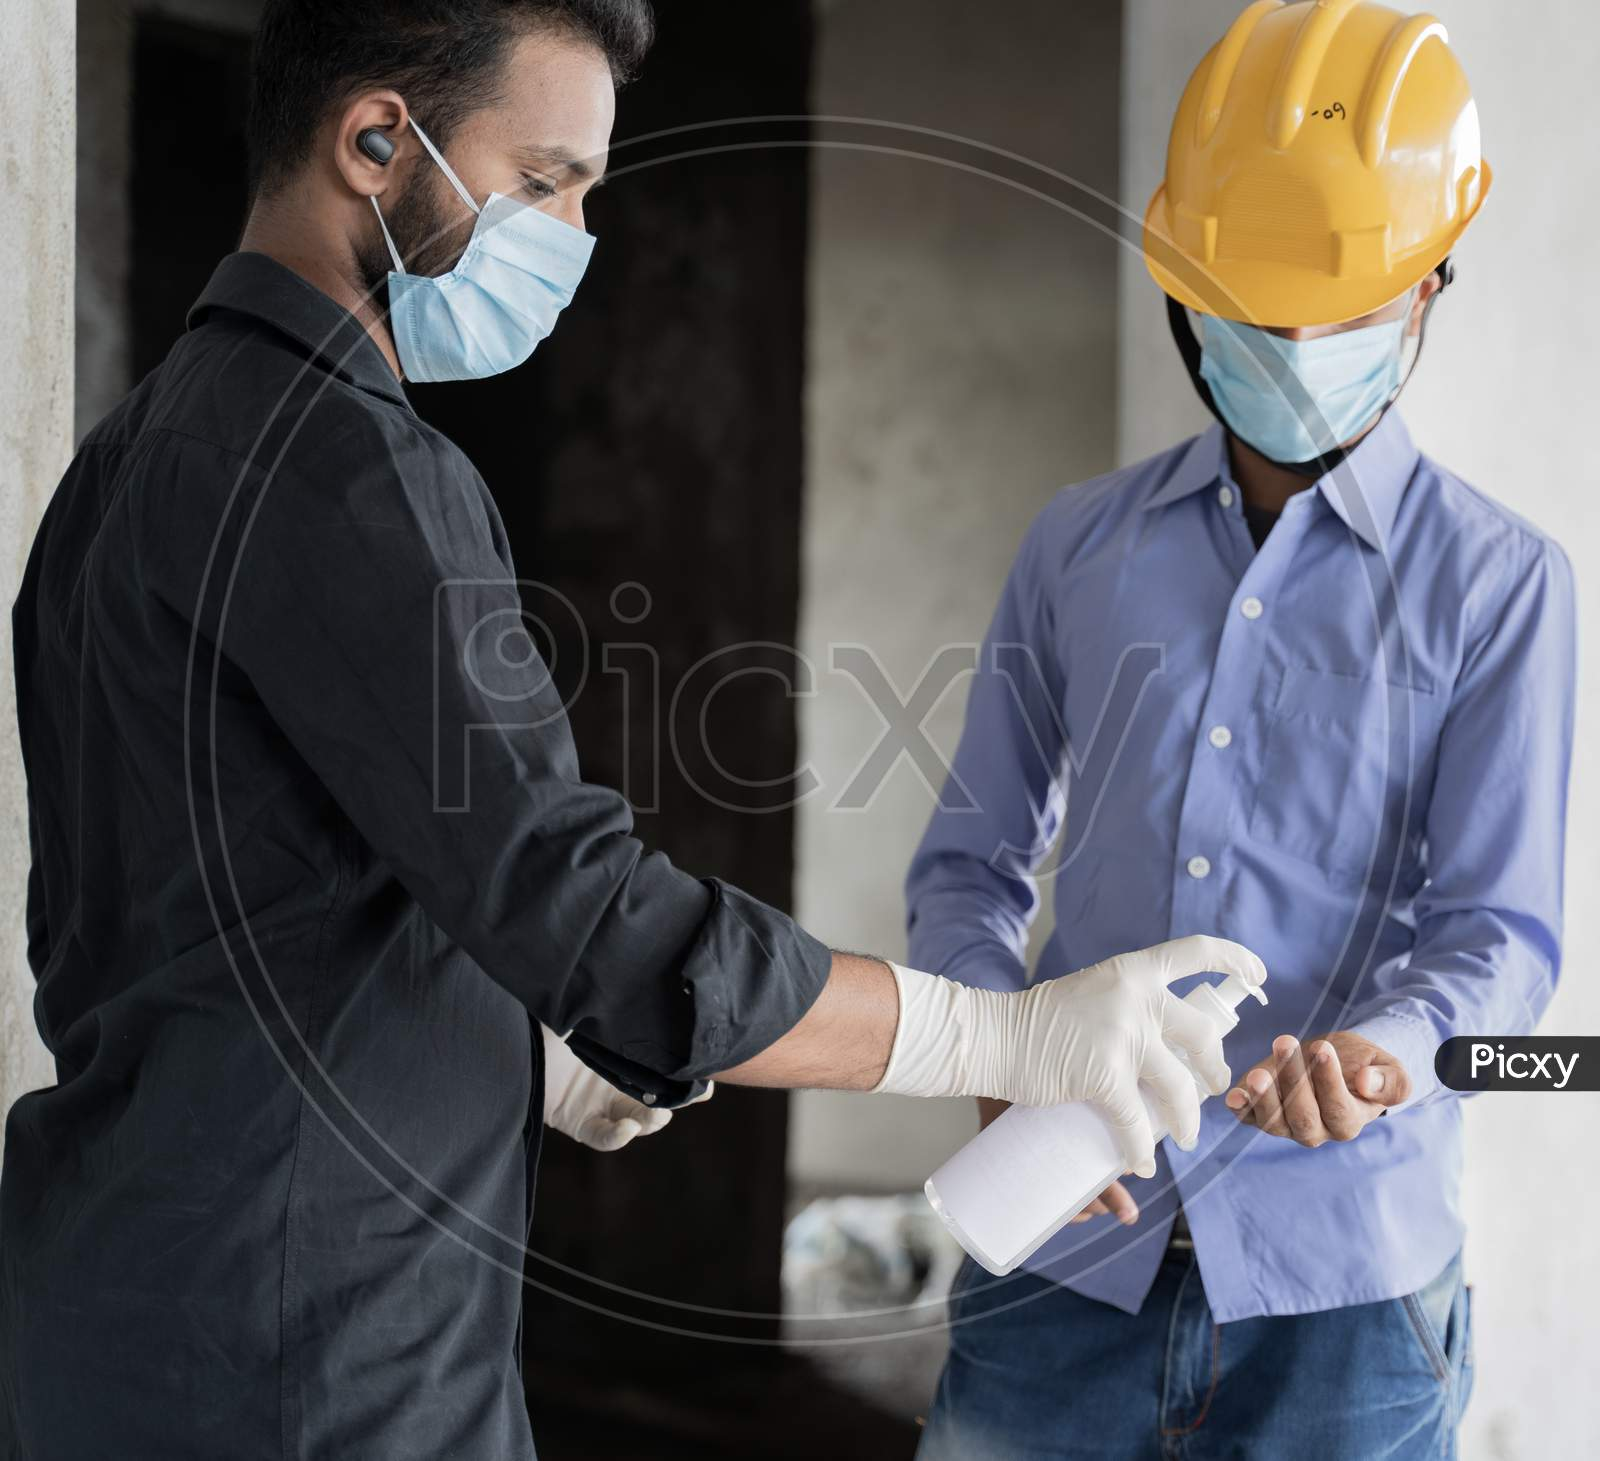 Poeple At Construction Site Using Hand Sanitizer Before Entering To Work Place As Covid-19 Or Coronavirus Safety Measures